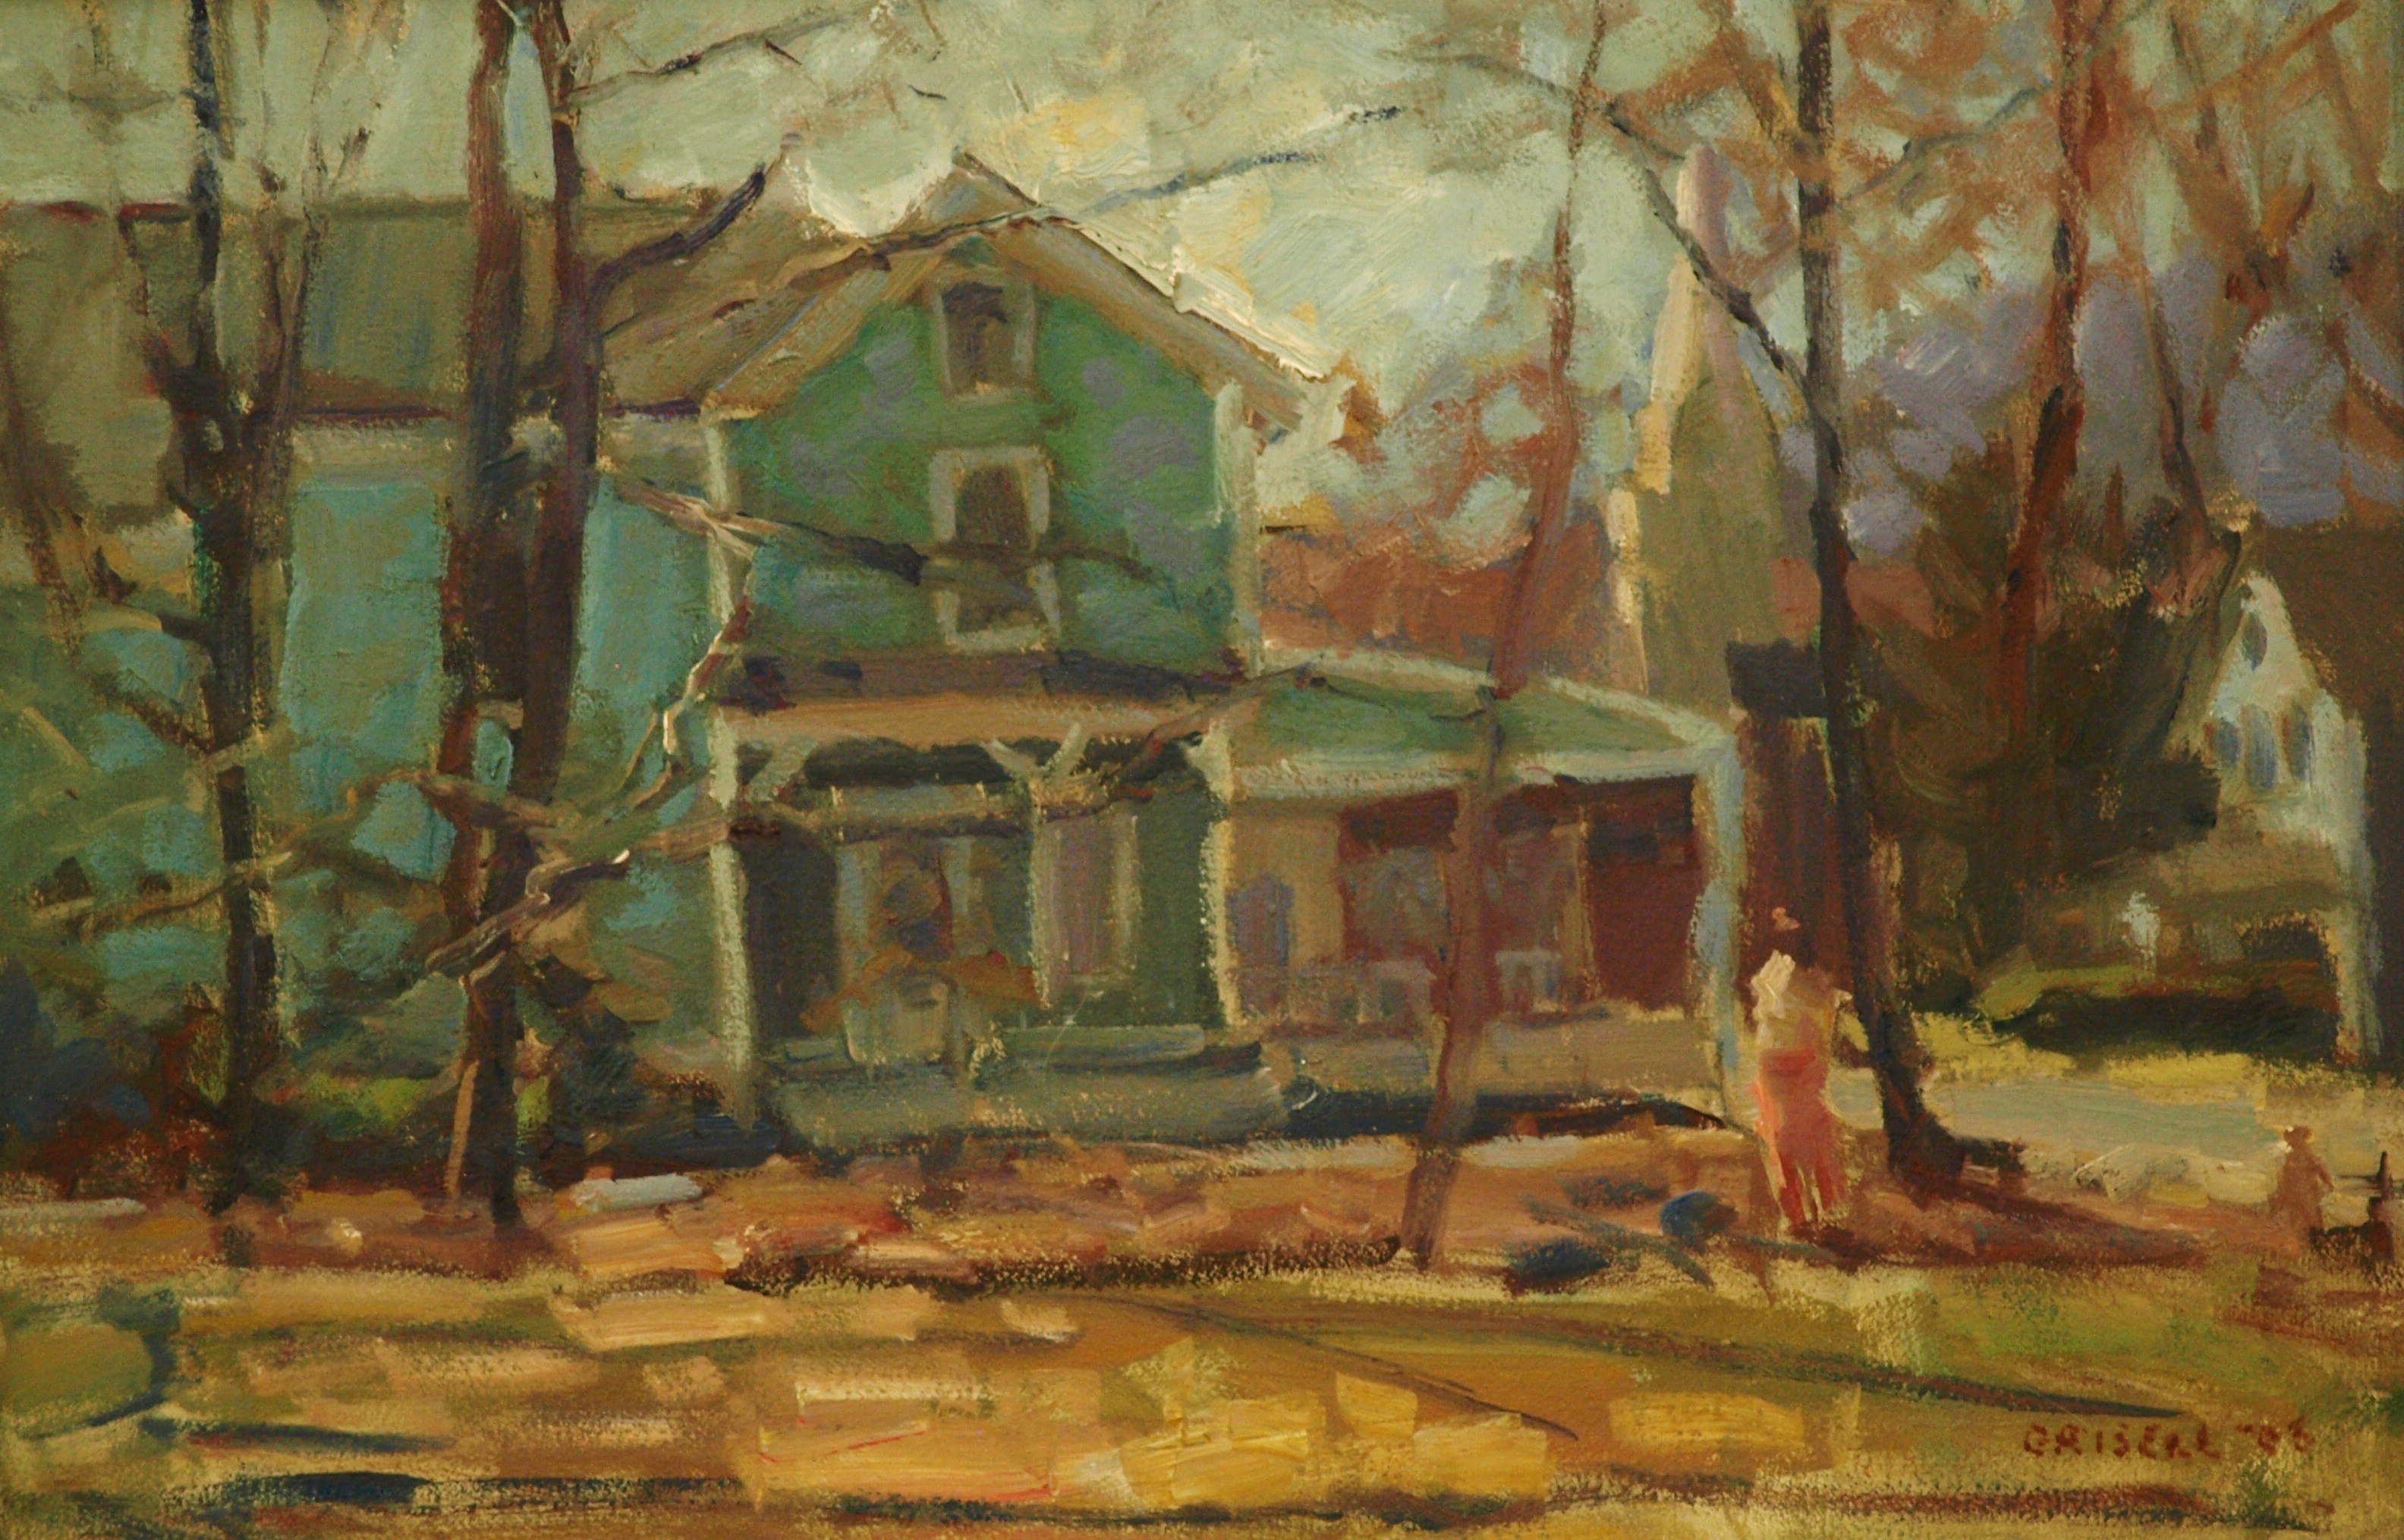 Spring Morning - Kent, Oil on Panel, 12 x 18 Inches, by Susan Grisell, $325